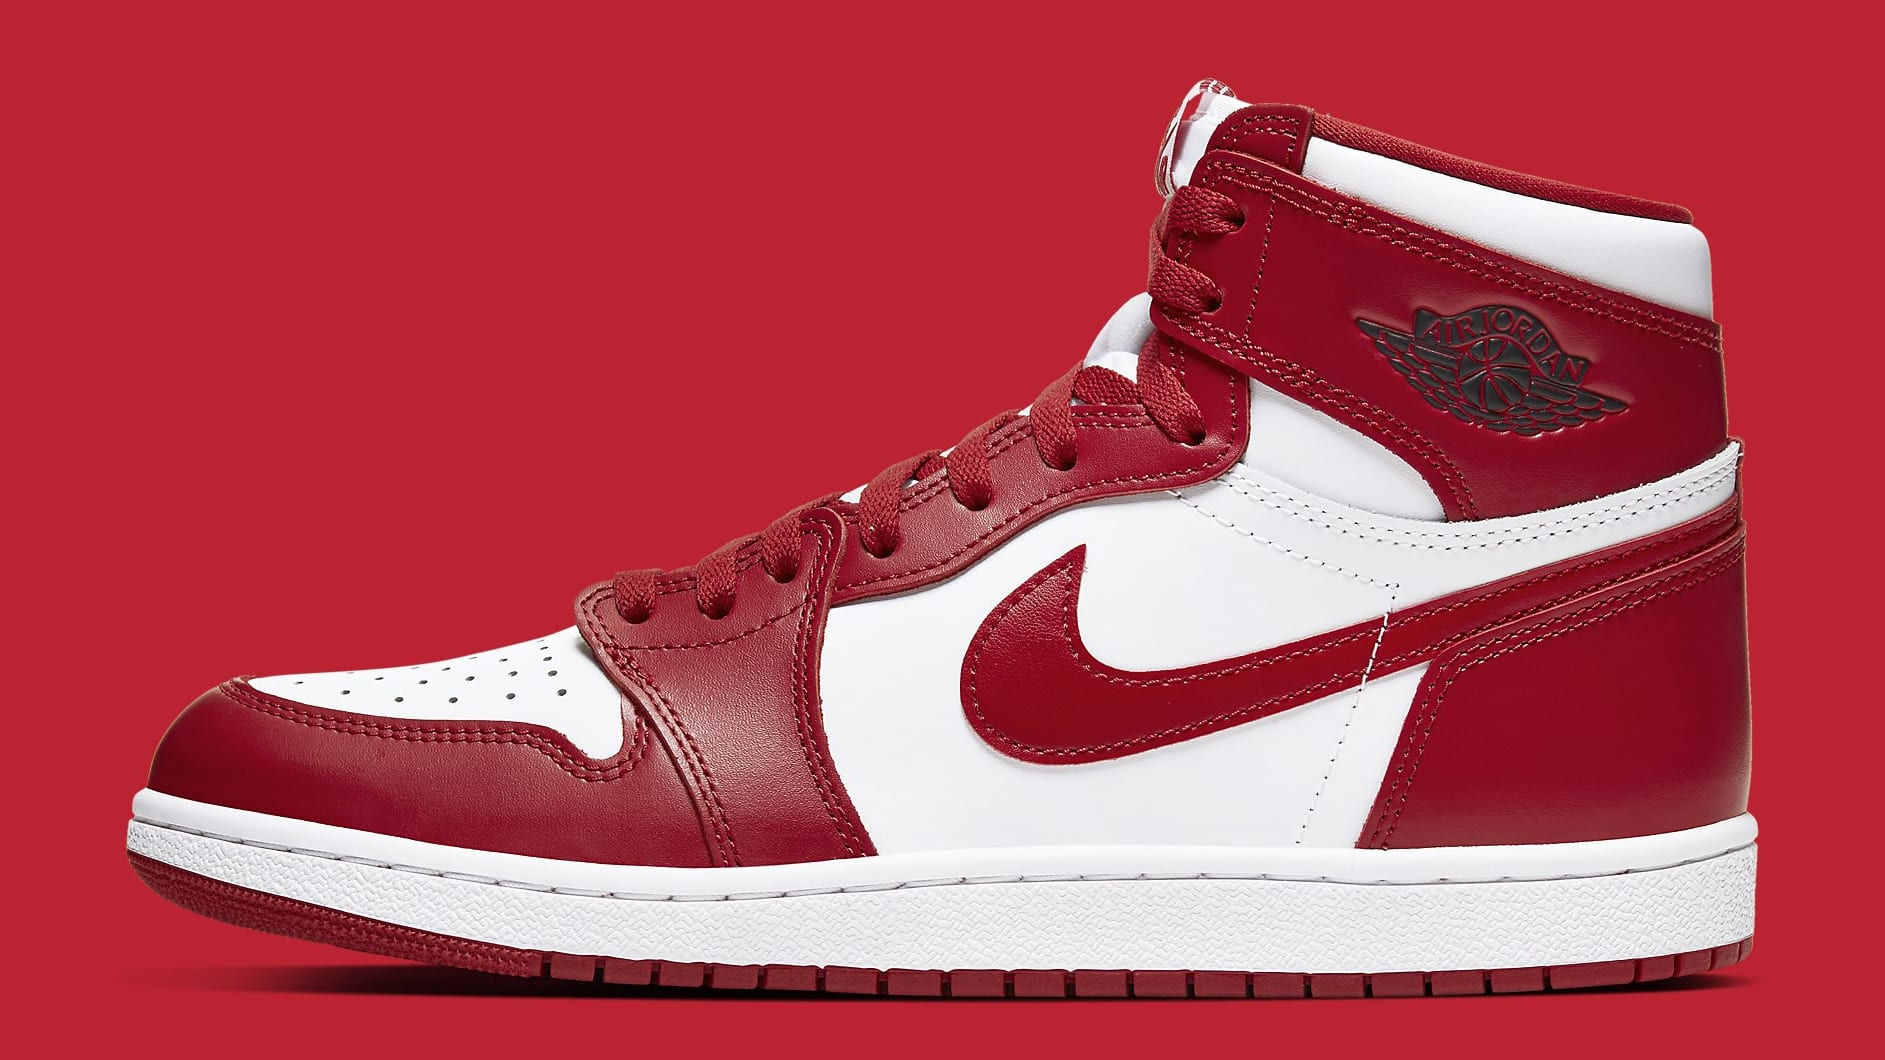 Air Jordan New Beginnings Pack Release Date CT6252-900 Air Jordan 1 Profile